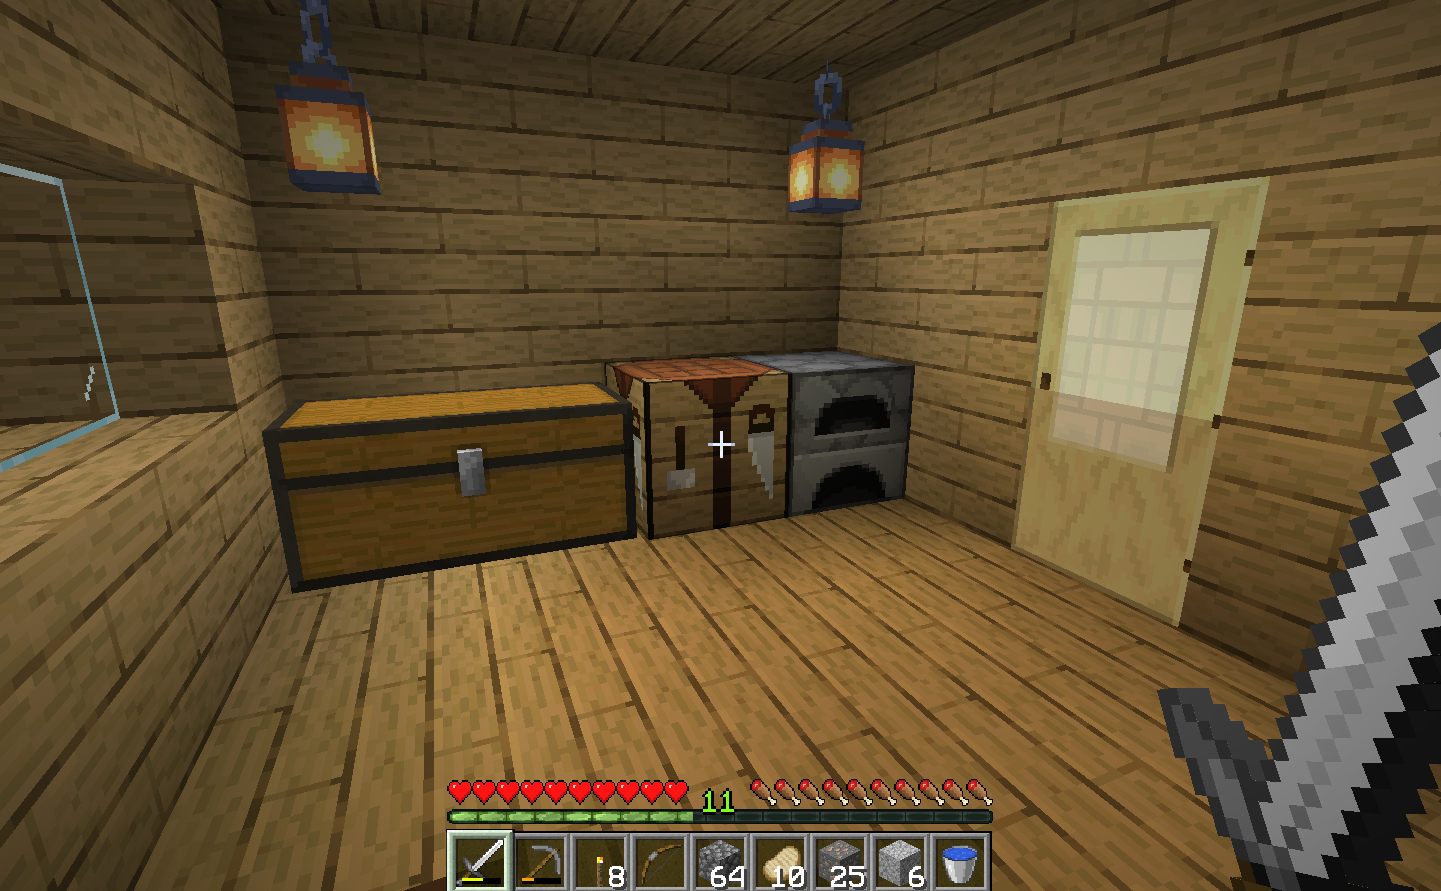 A view of the inside of a minecraft house, with the faithful 32 Resource Pack loaded